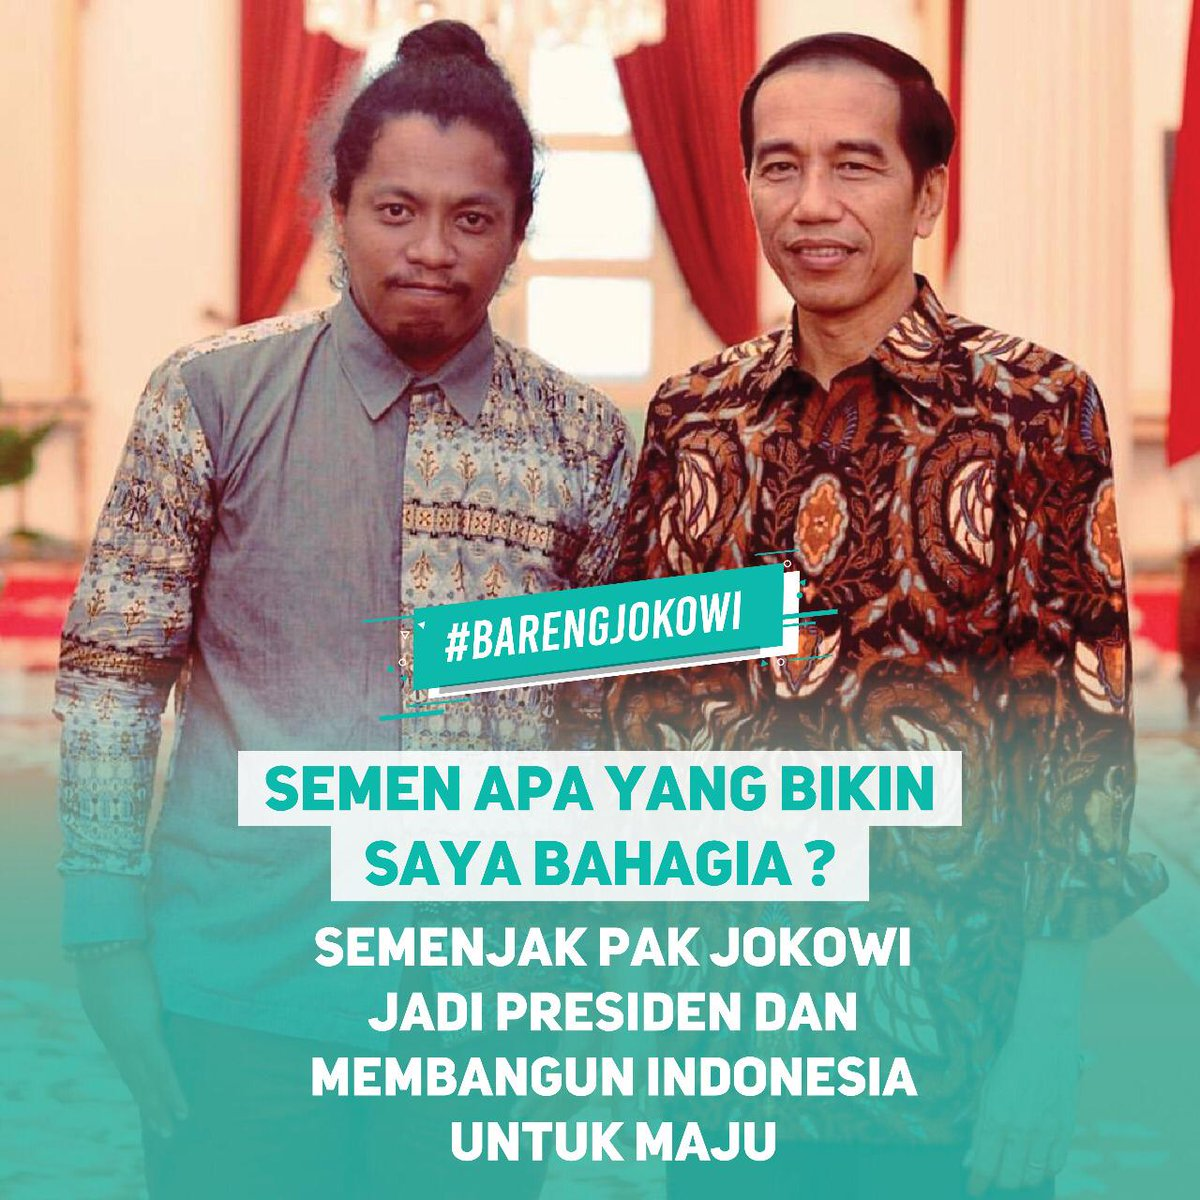 Dede Budhyarto's photo on #BarengJokowi